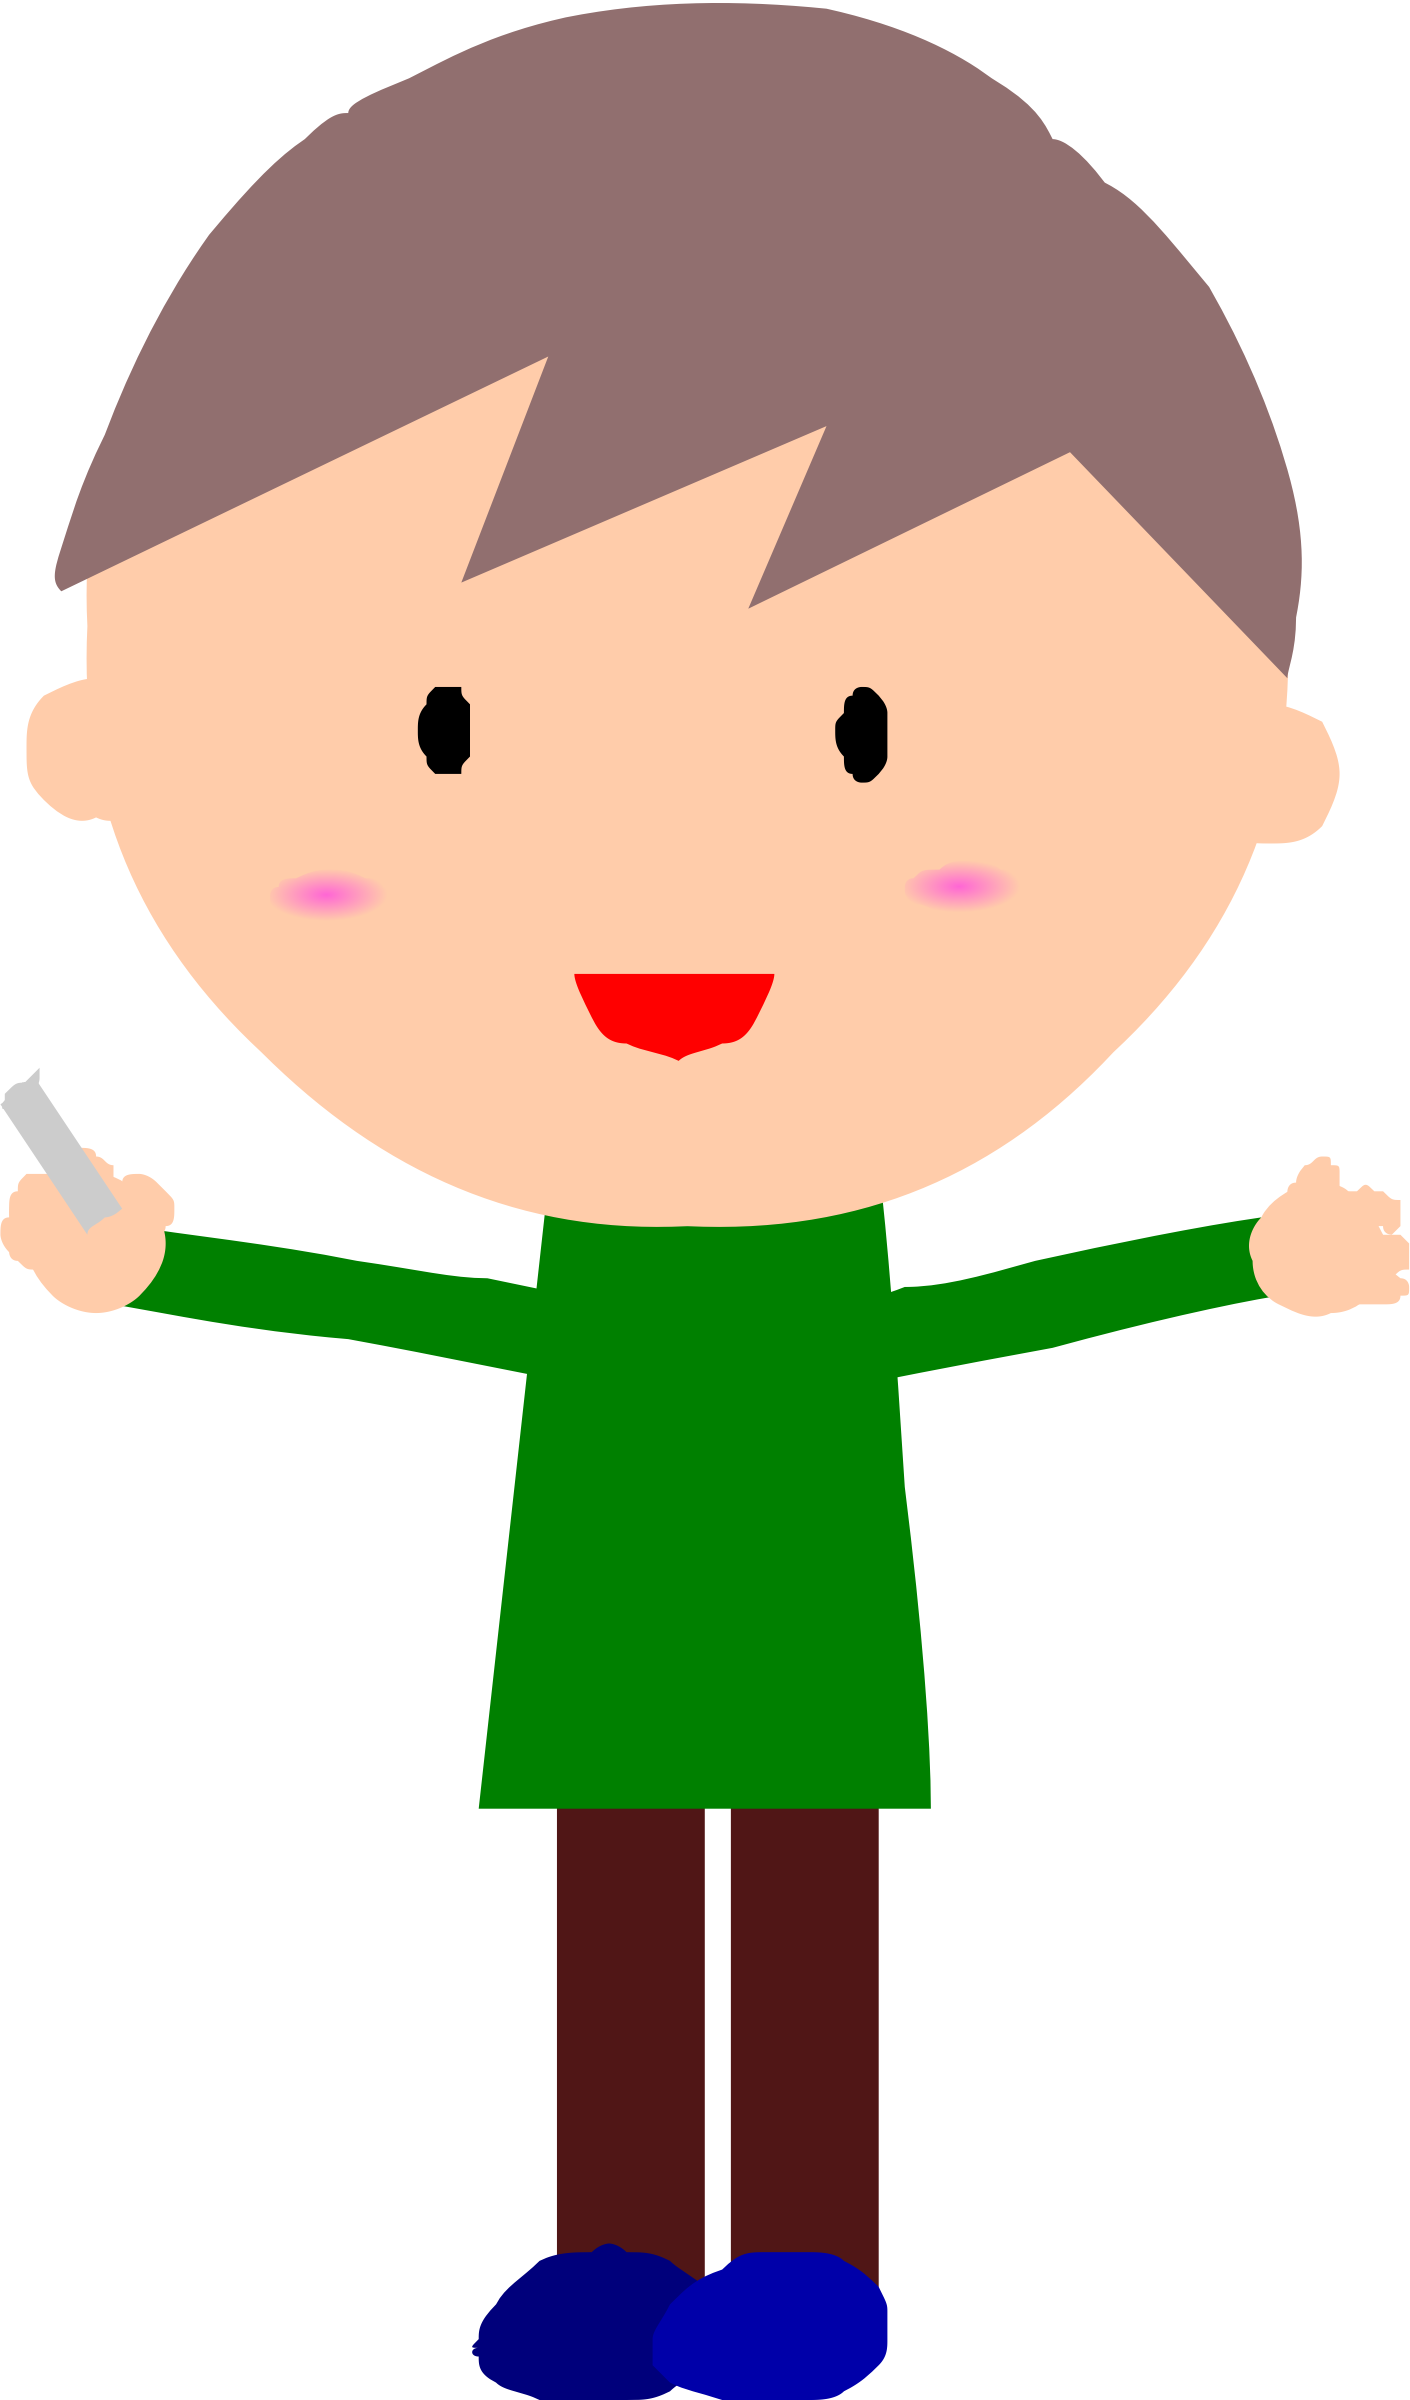 Animation of teacher with. Announcements clipart animated